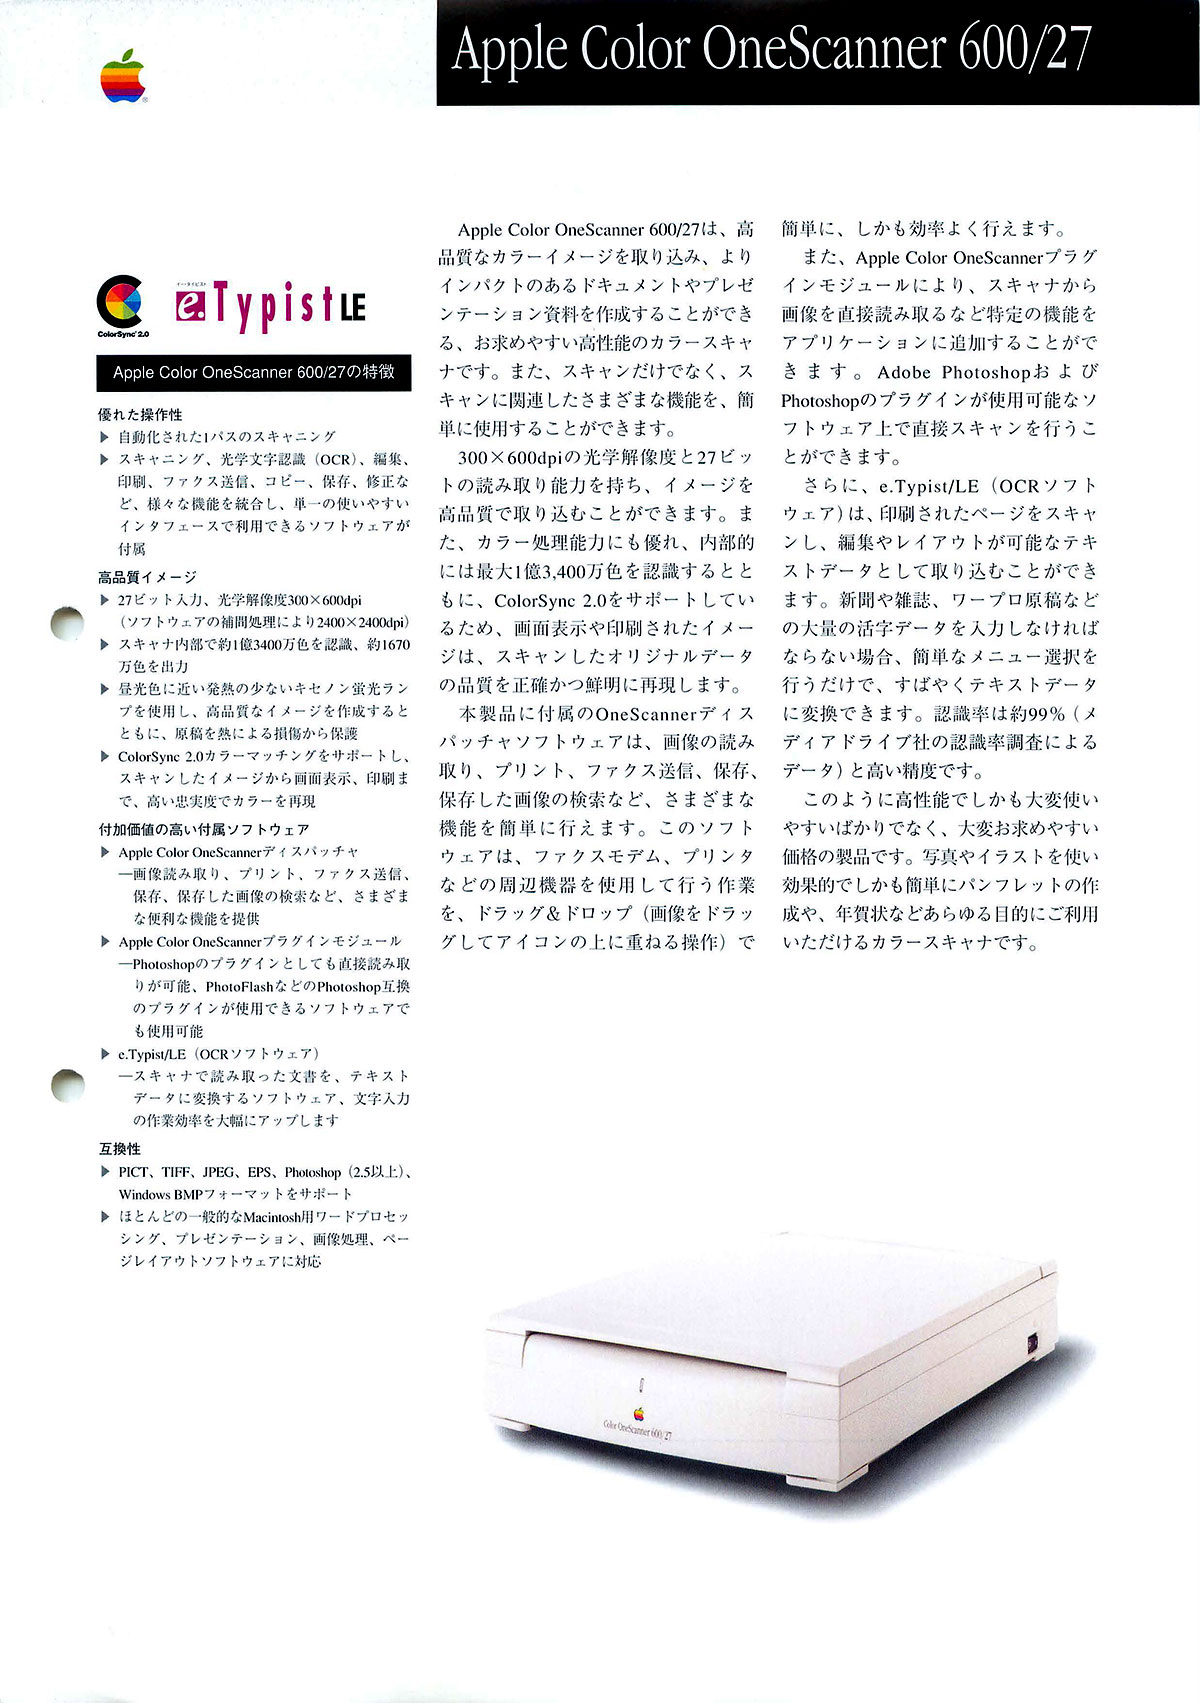 Apple Color OneScanner 600/27